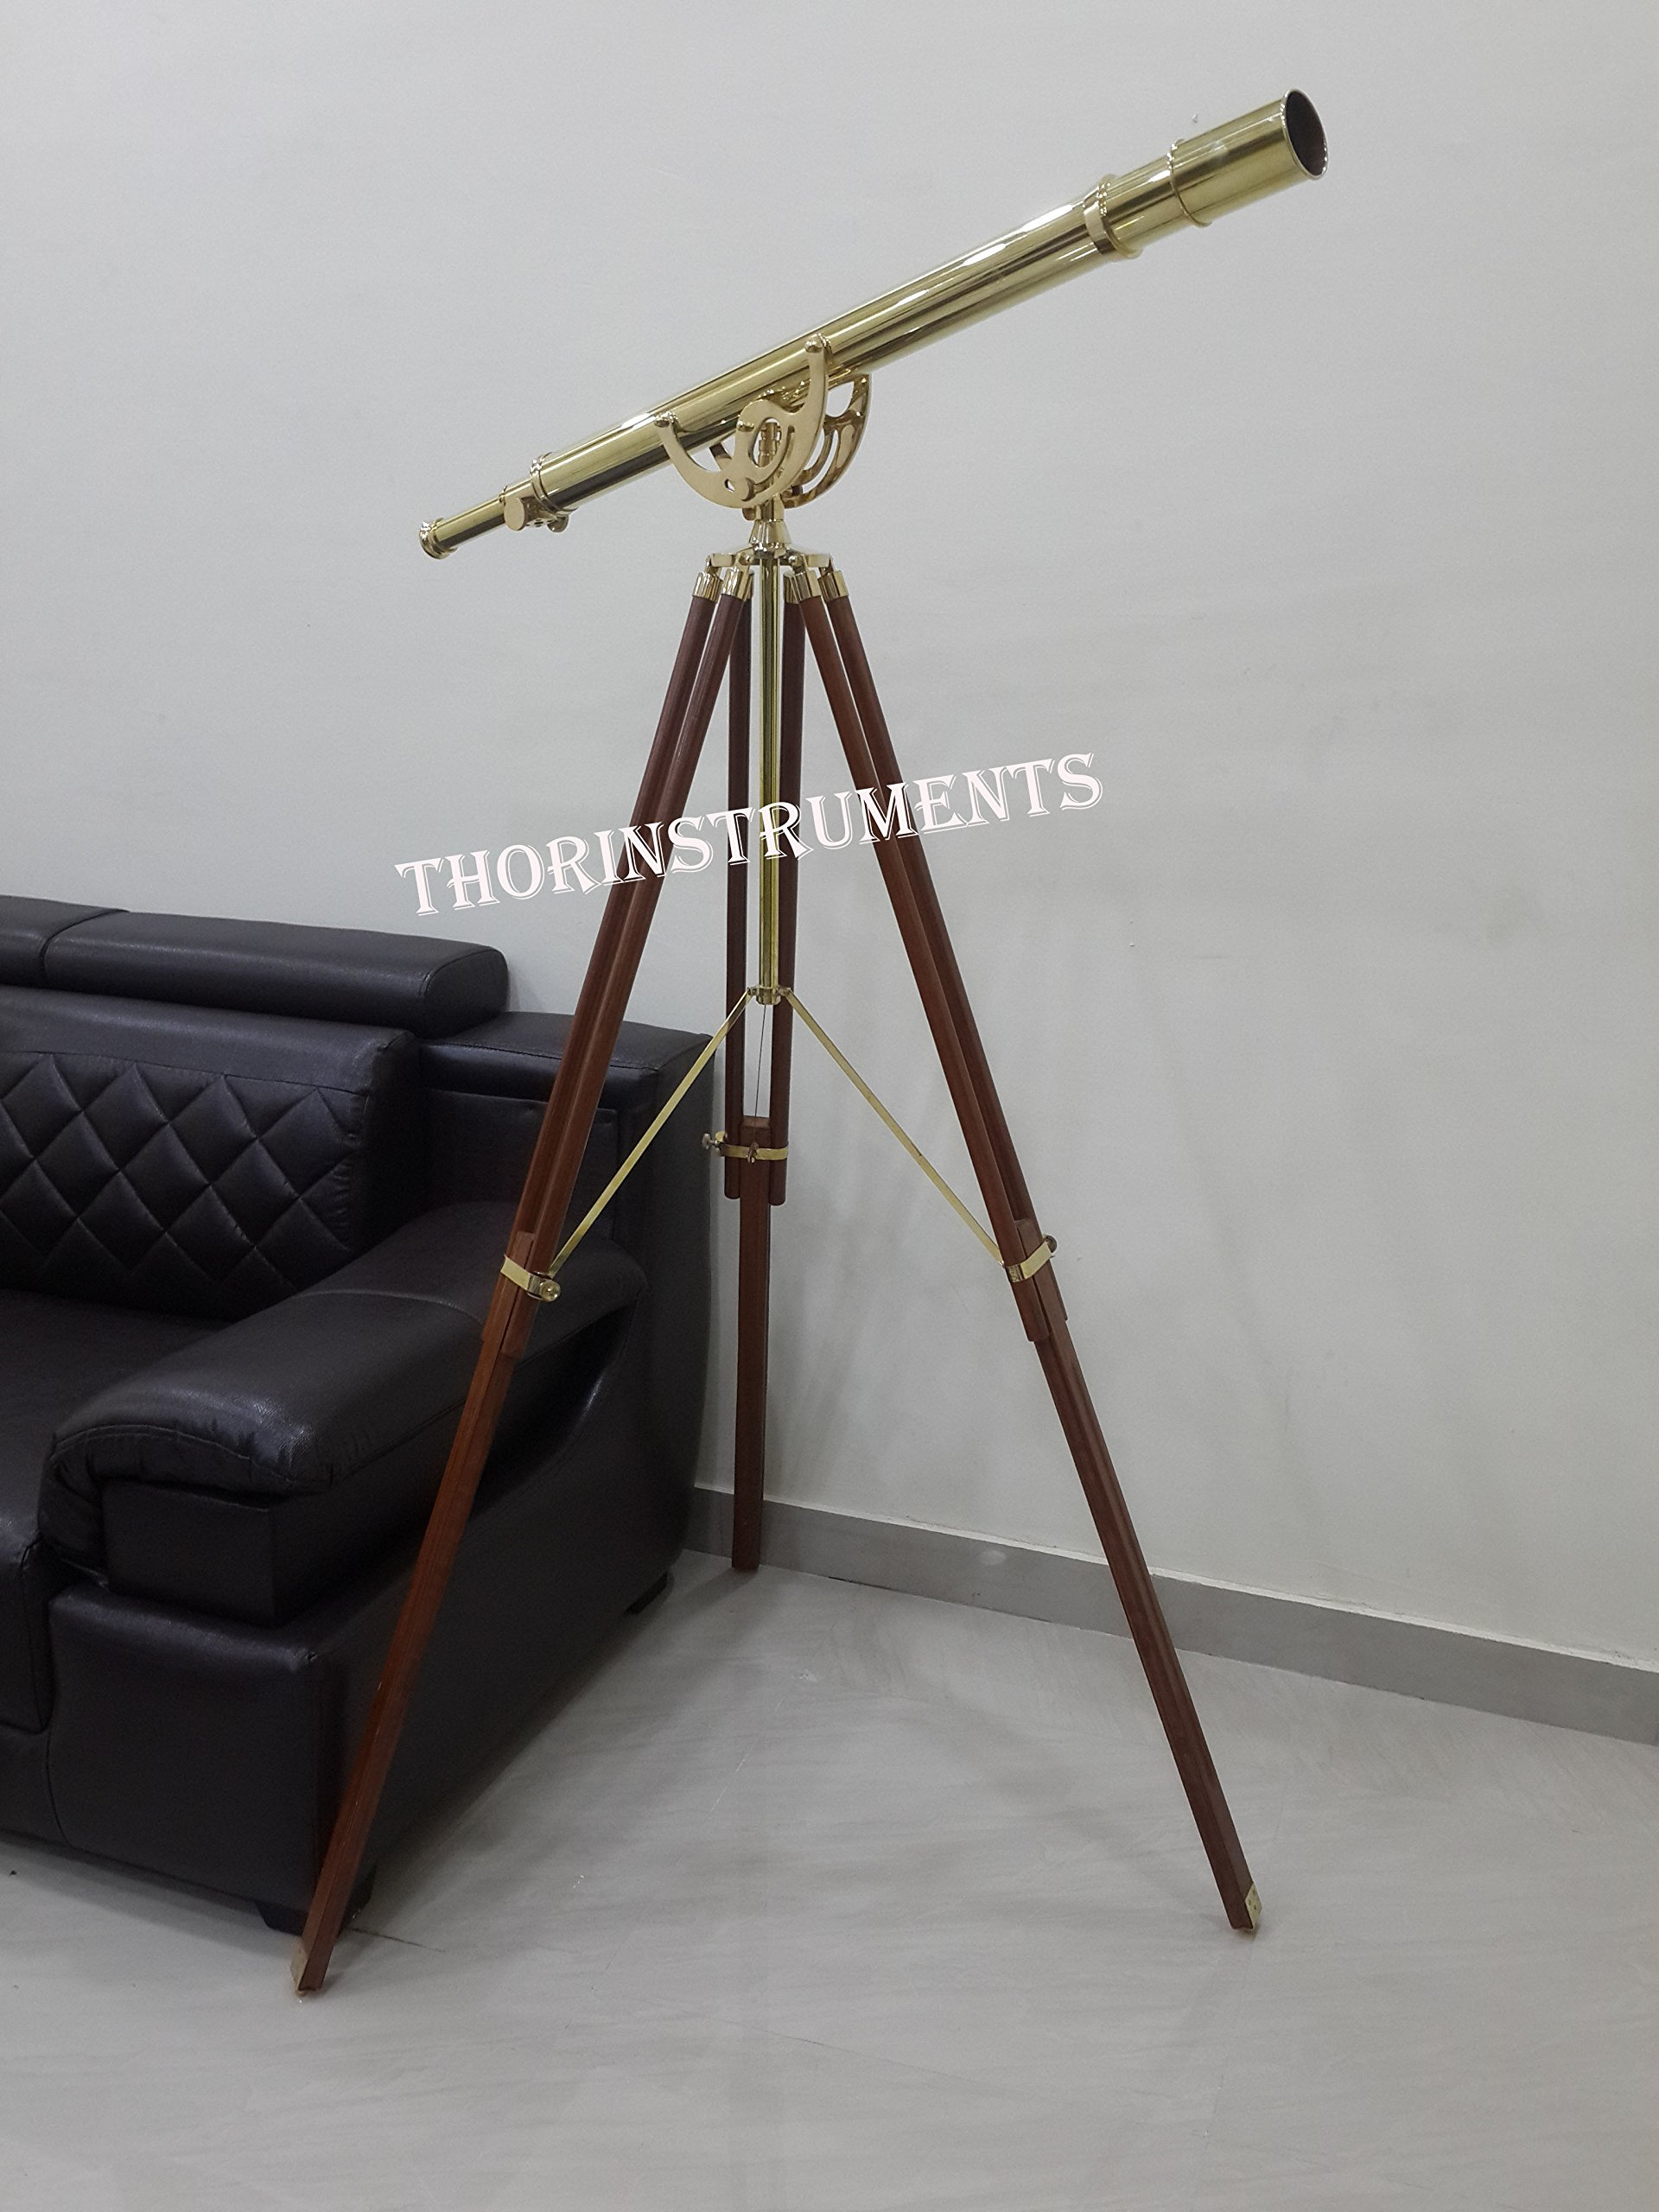 Thor Brass Harbormaster Nautical Telescope Griffith Astro Standing Floor Stand Brown Tripod